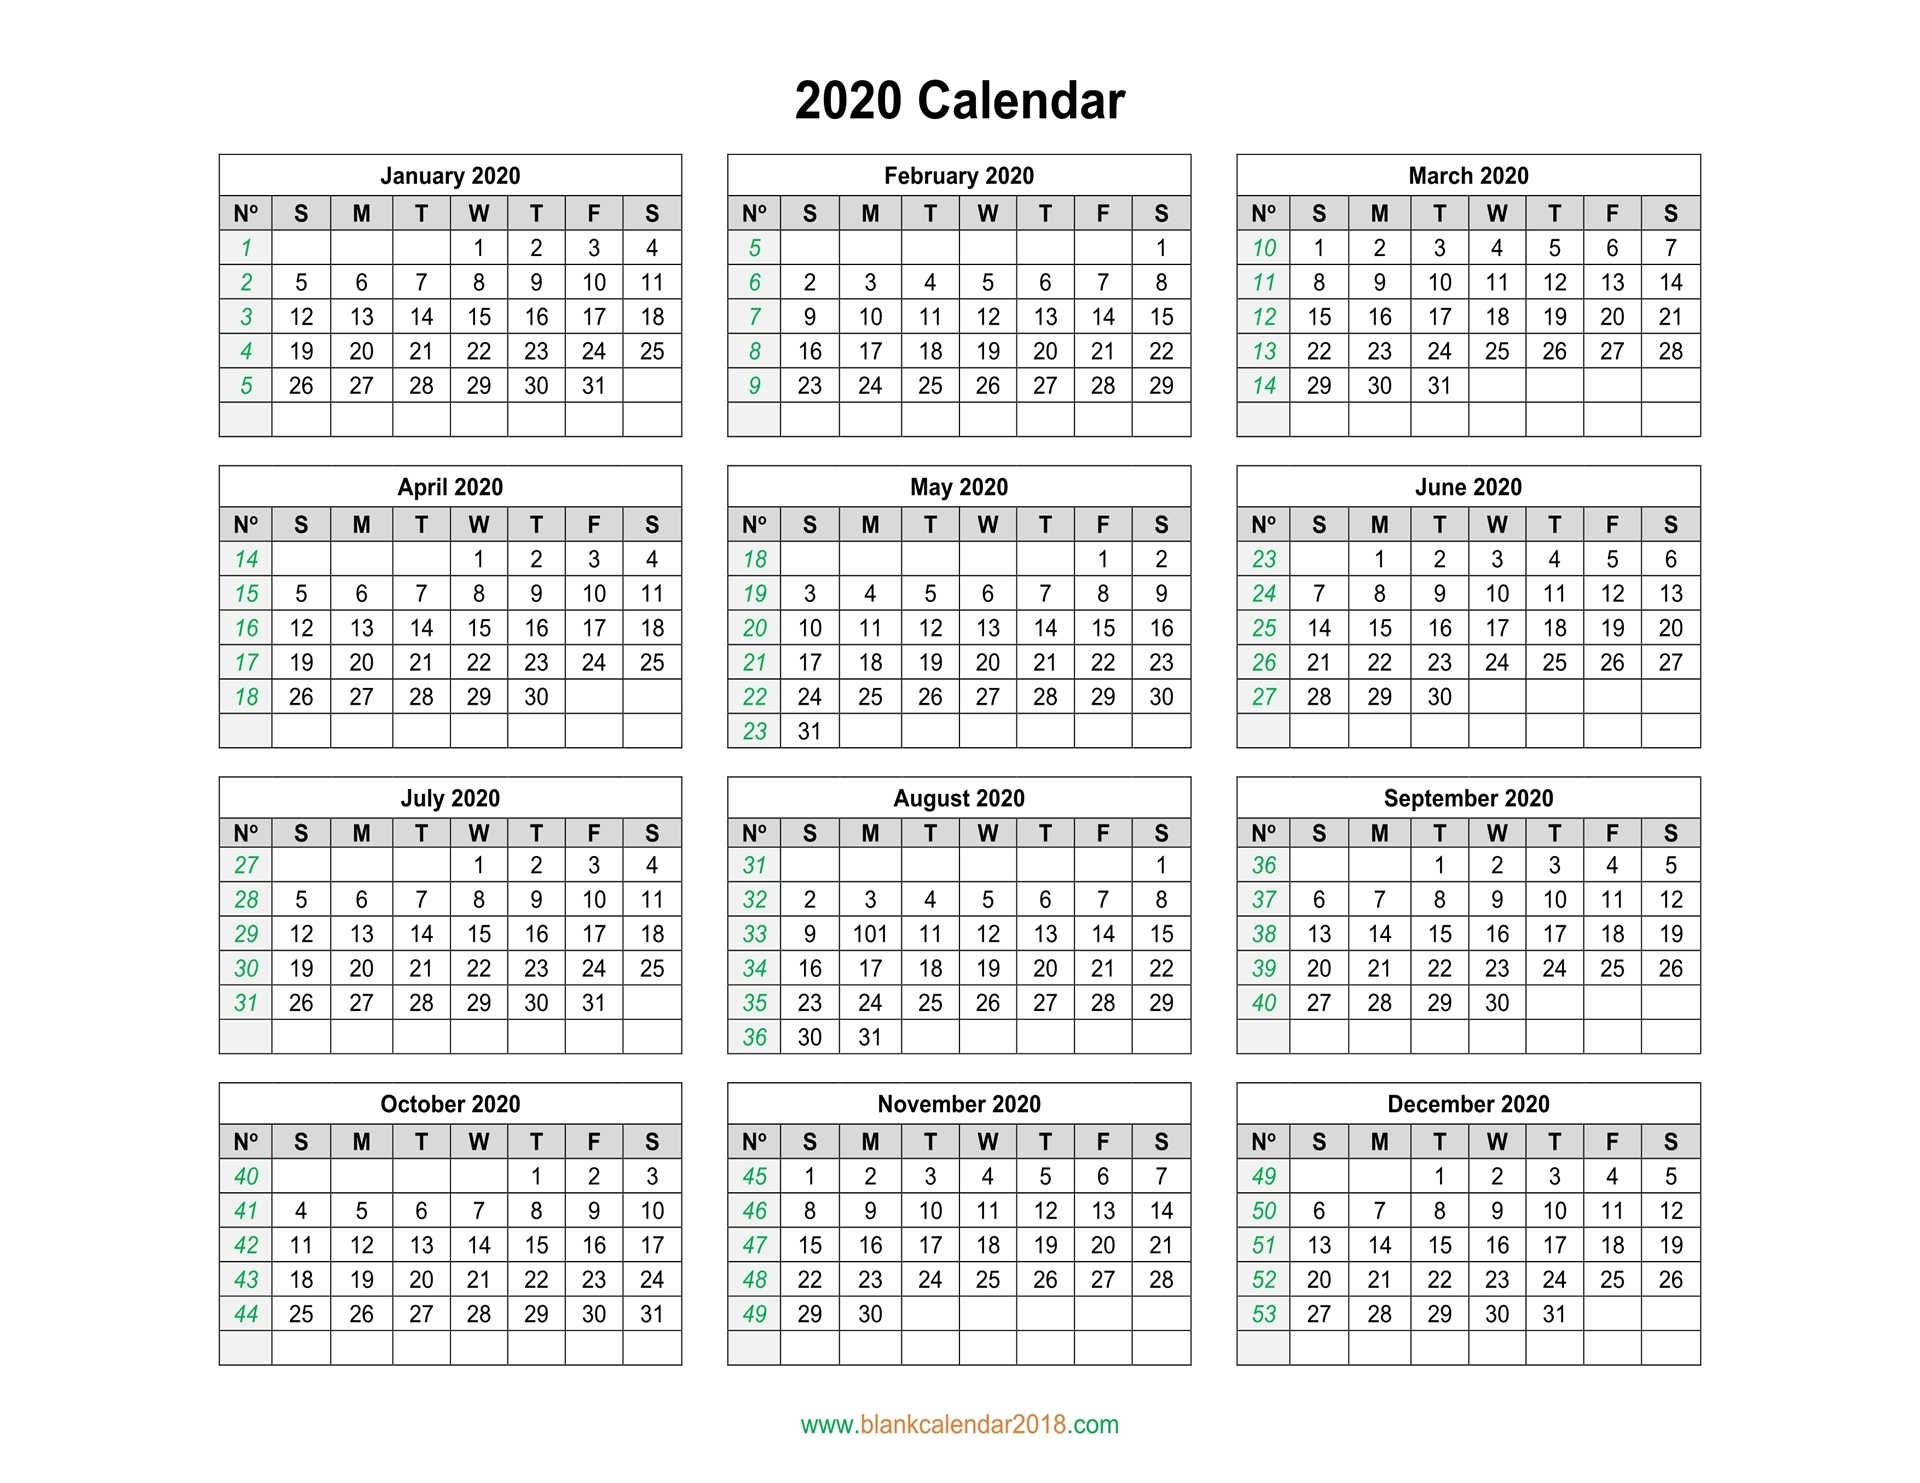 Blank Calendar 2020 regarding Fill In Calendar 2020 Printable